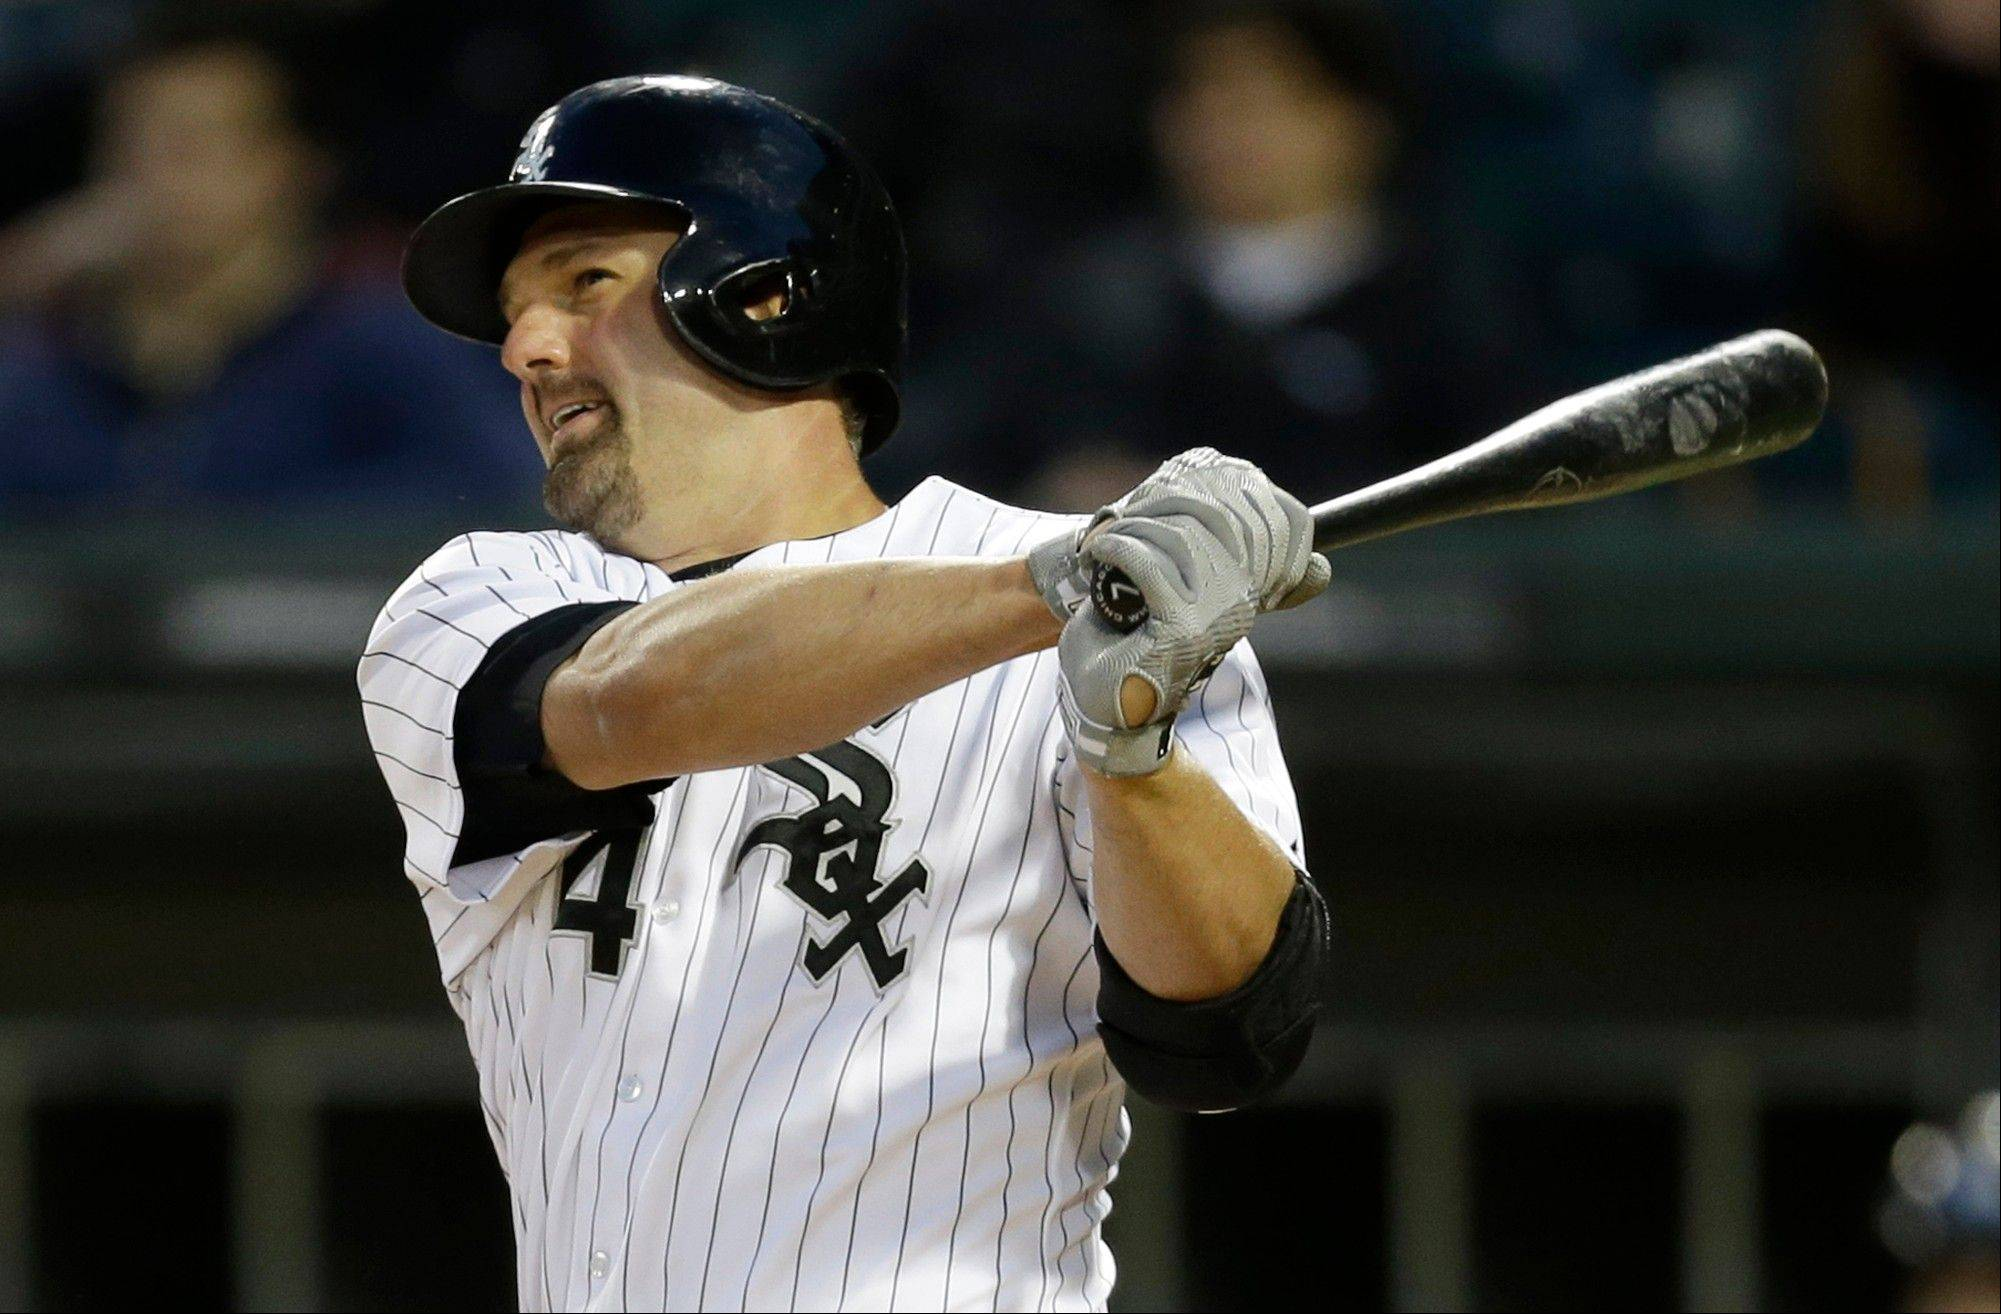 It sure does seem like this season might be it for Paul Konerko, but whenever it is that he decides to walk away from the game he should go out with all the praise and accolades he has earned as a star for the White Sox.